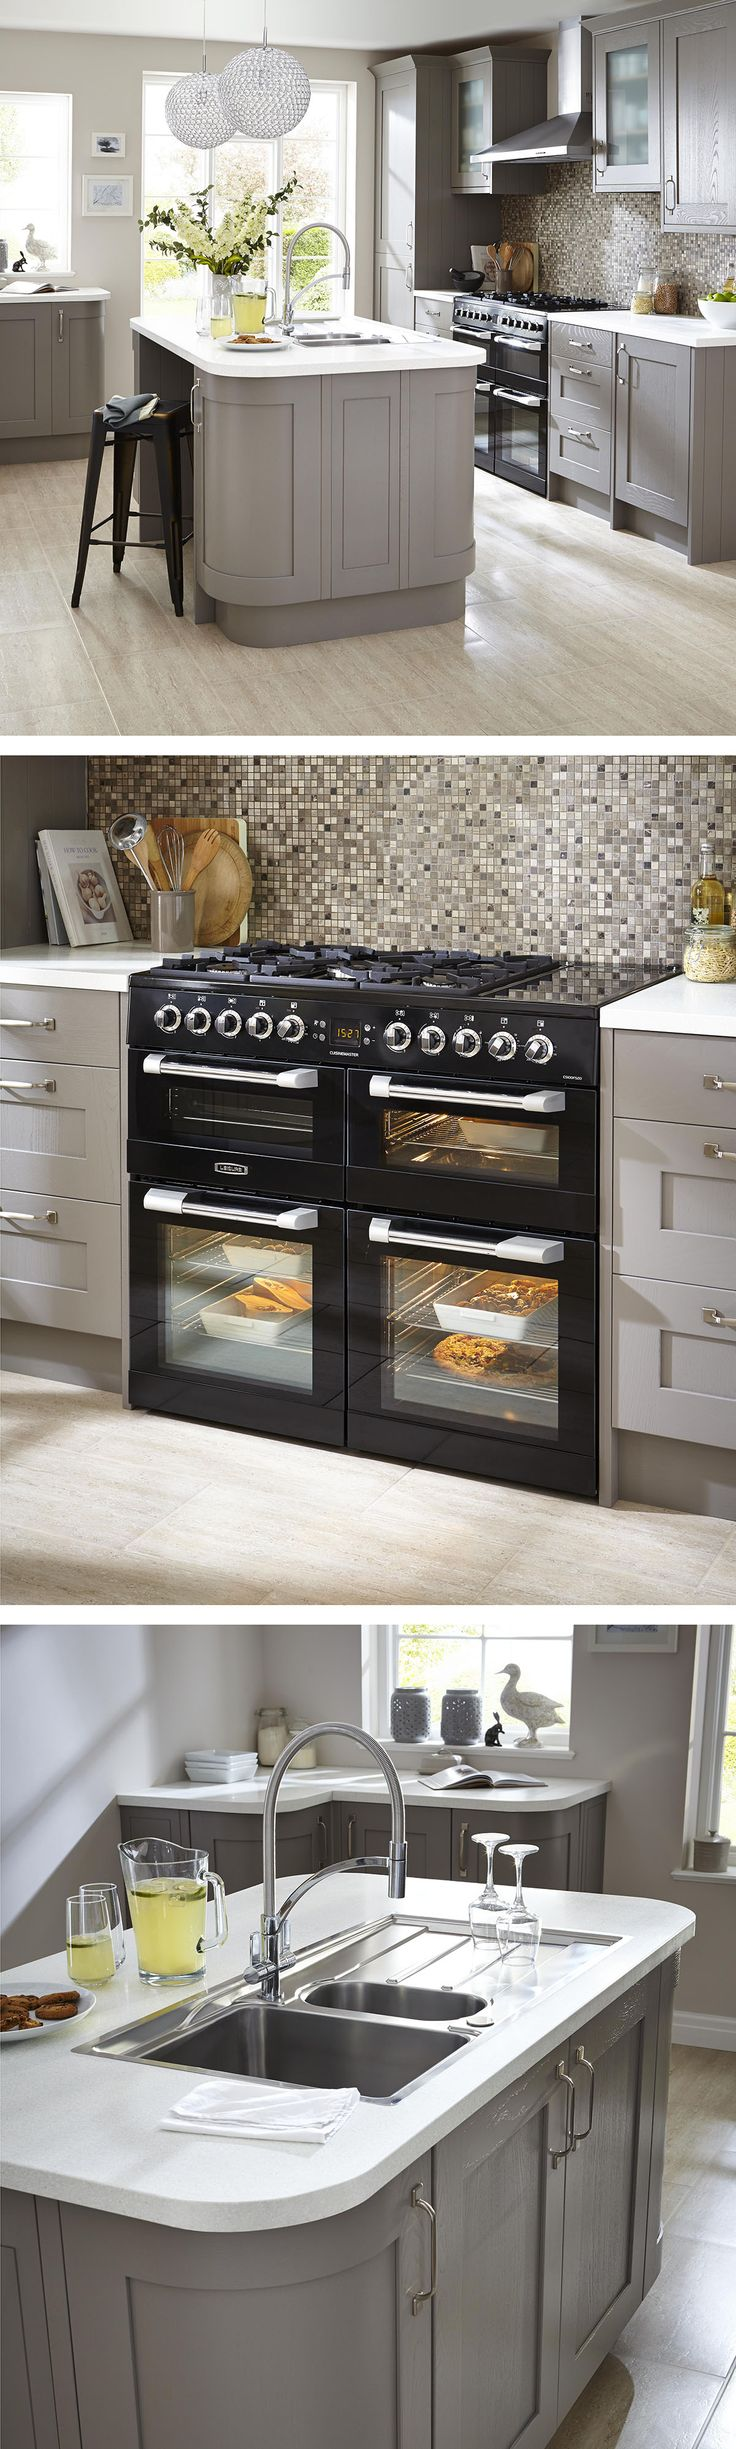 Best 25+ Stoves range cooker ideas on Pinterest | Stoves, Kitchen ...